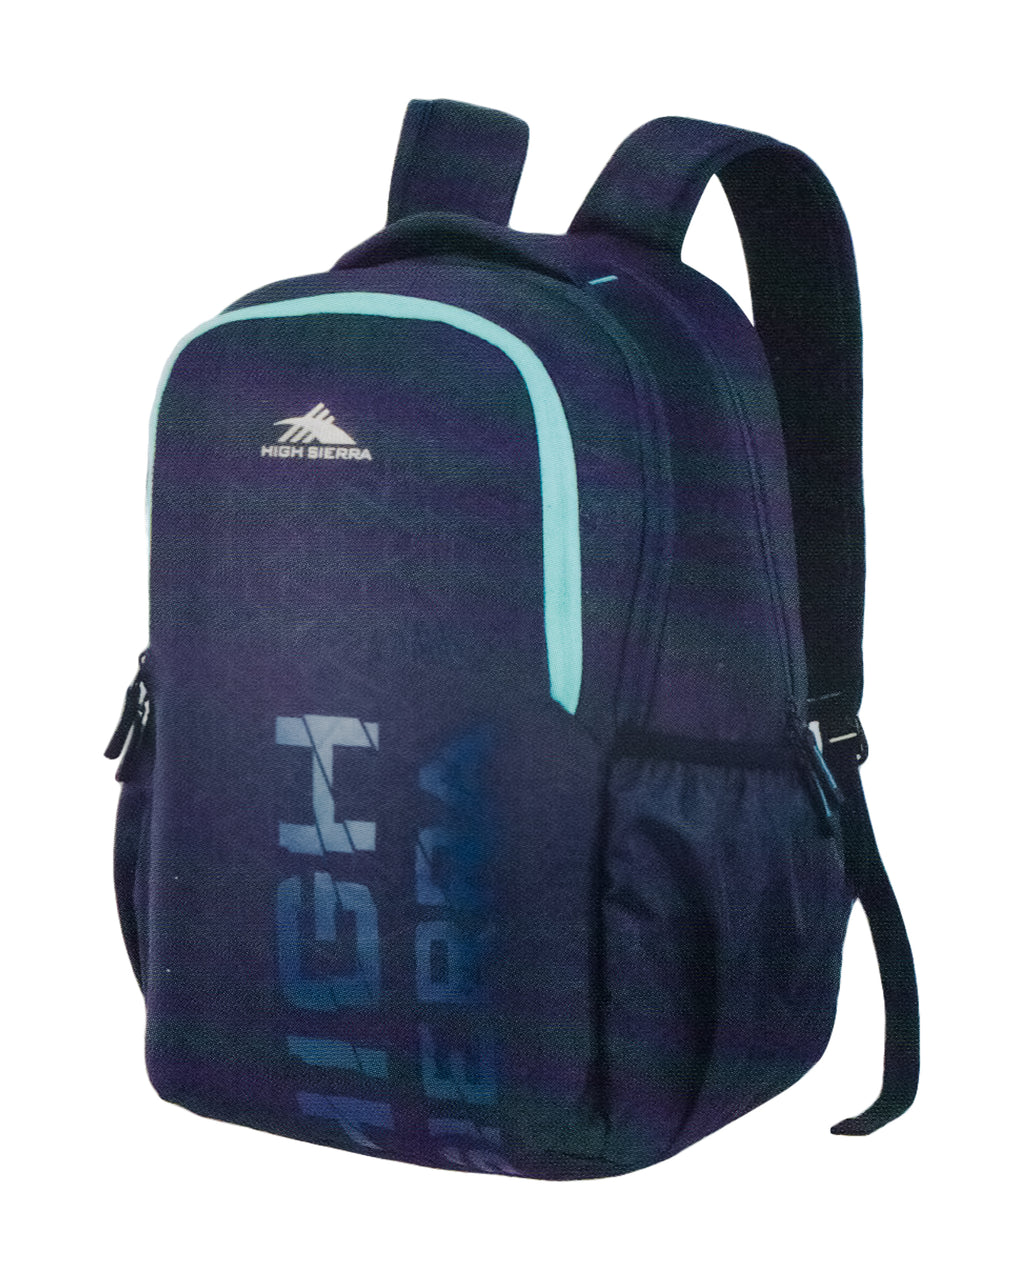 High Sierra Canyon 01 Laptop Backpack By American Tourister (Blue)